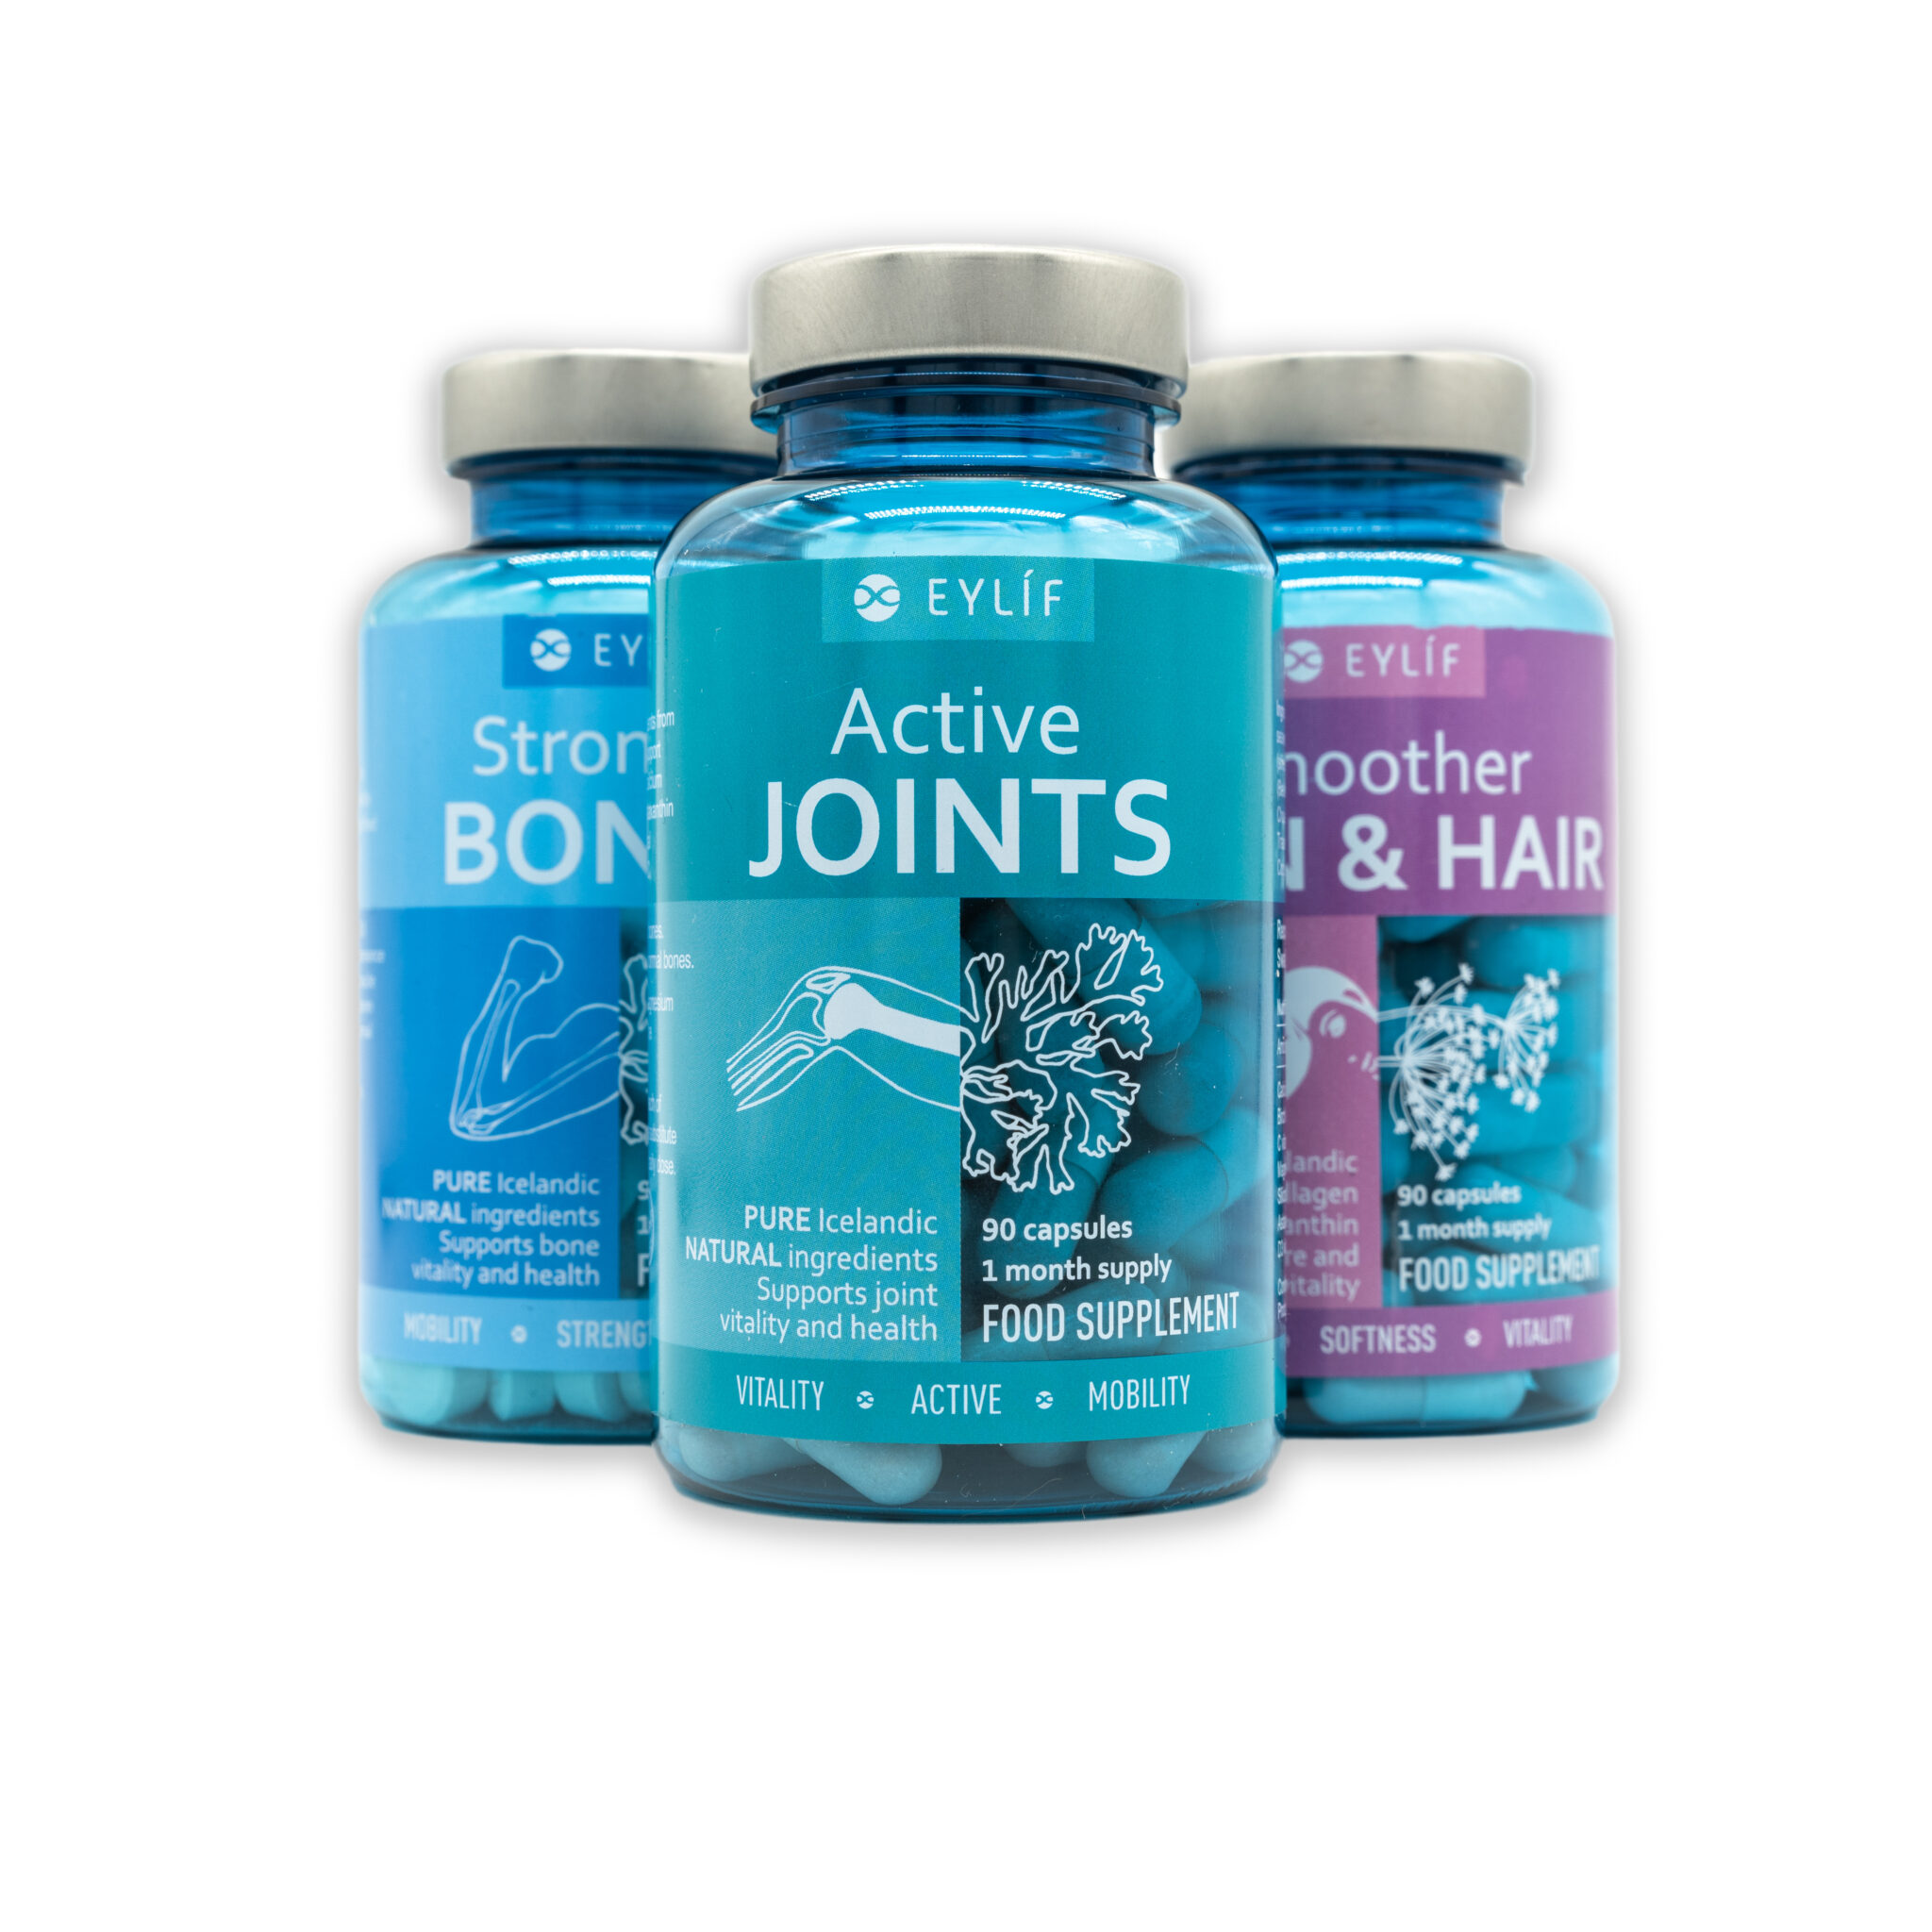 Active JOINTS by Eylíf